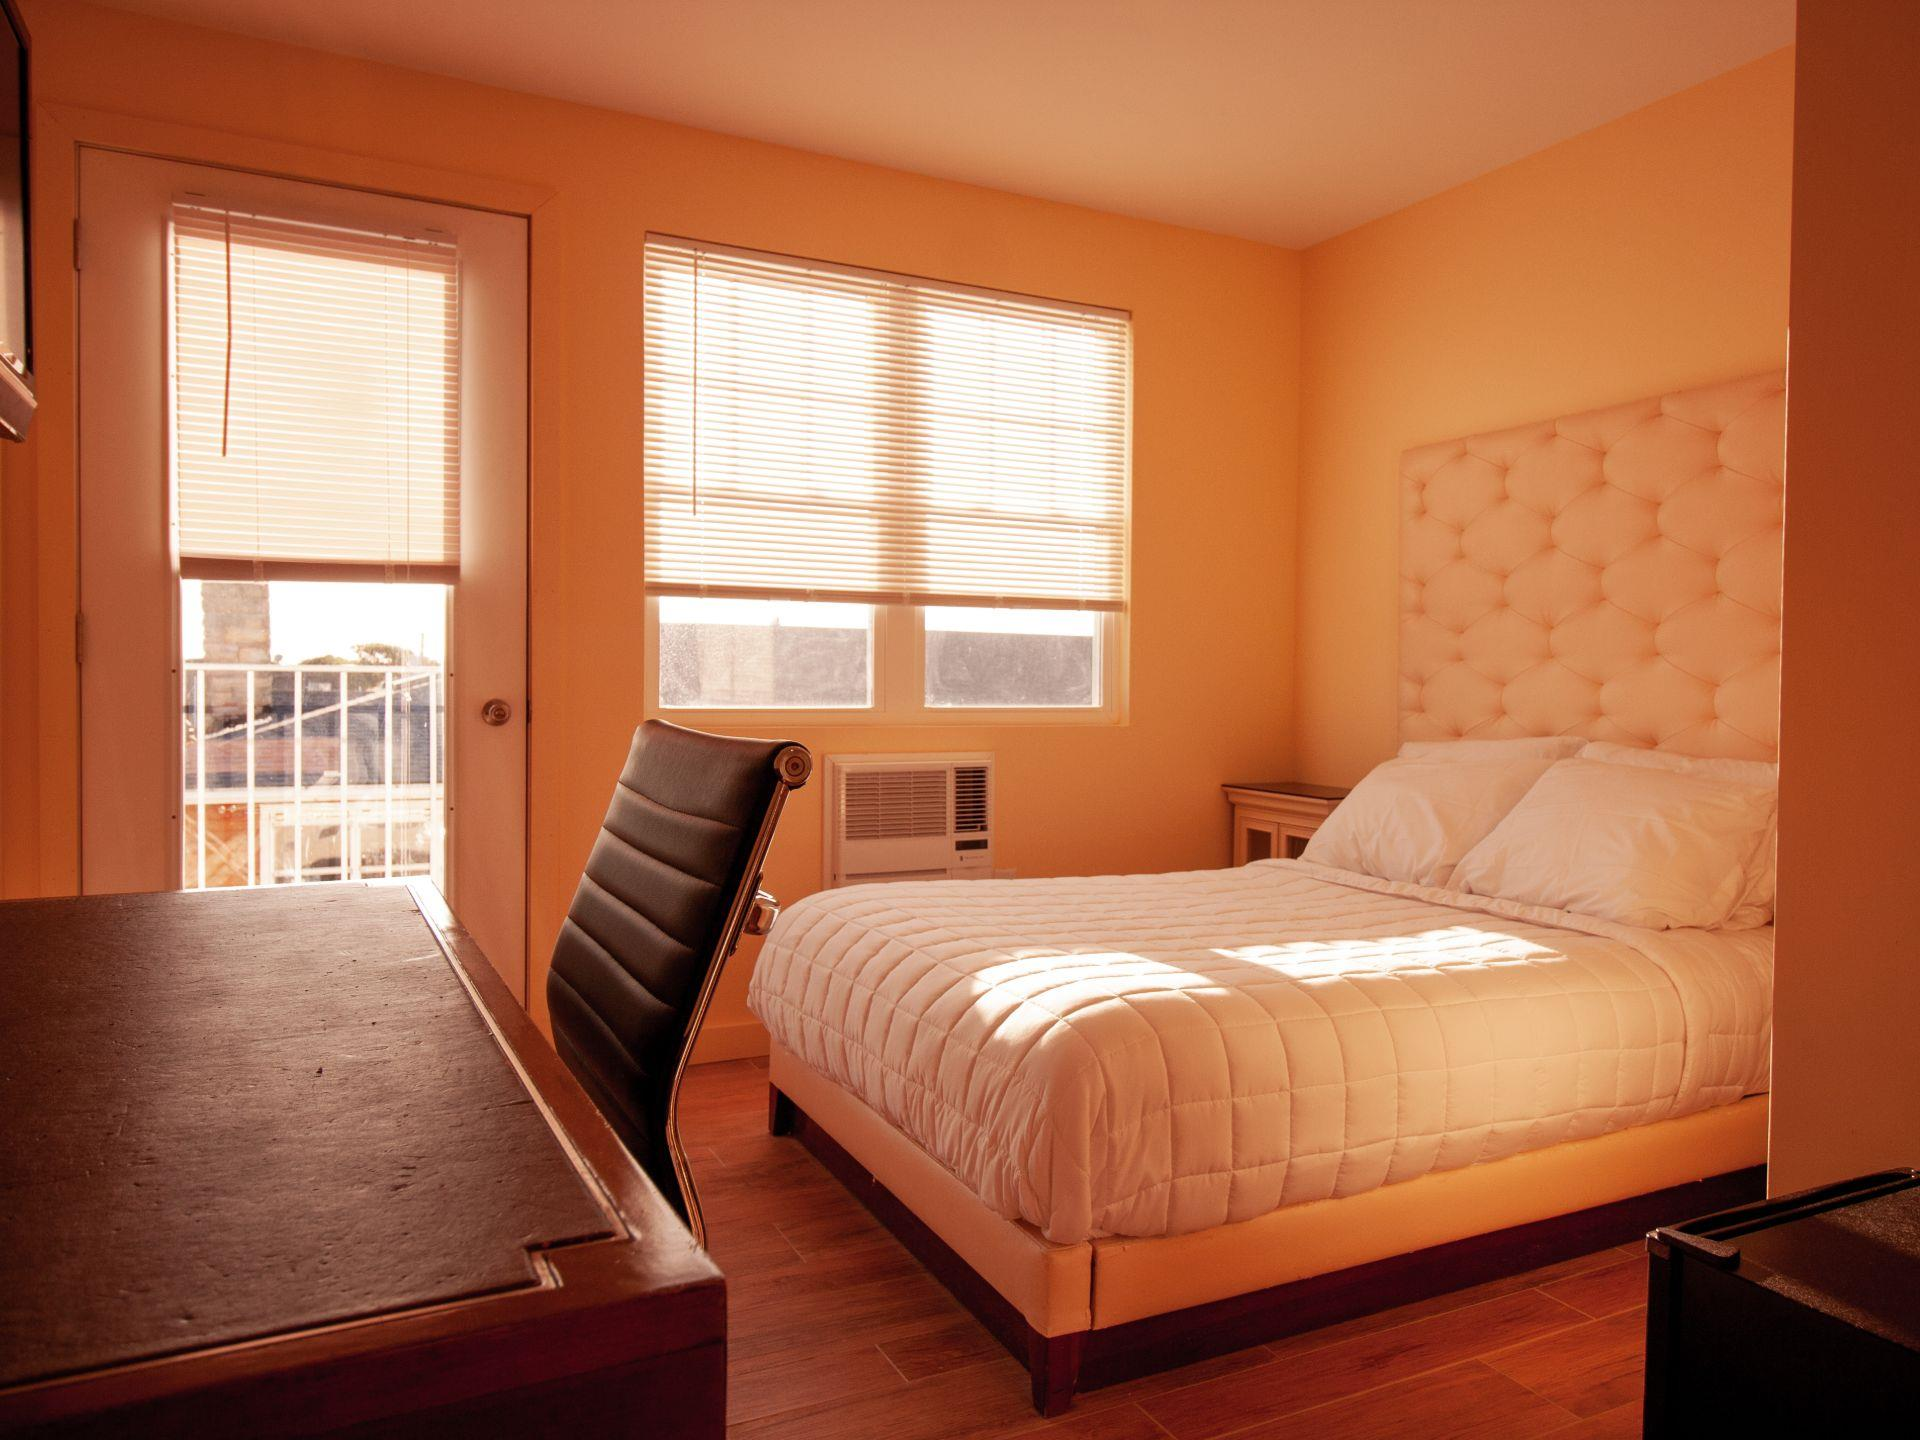 Standard room with a full size bed, desk and chair with a door leading to a balcony